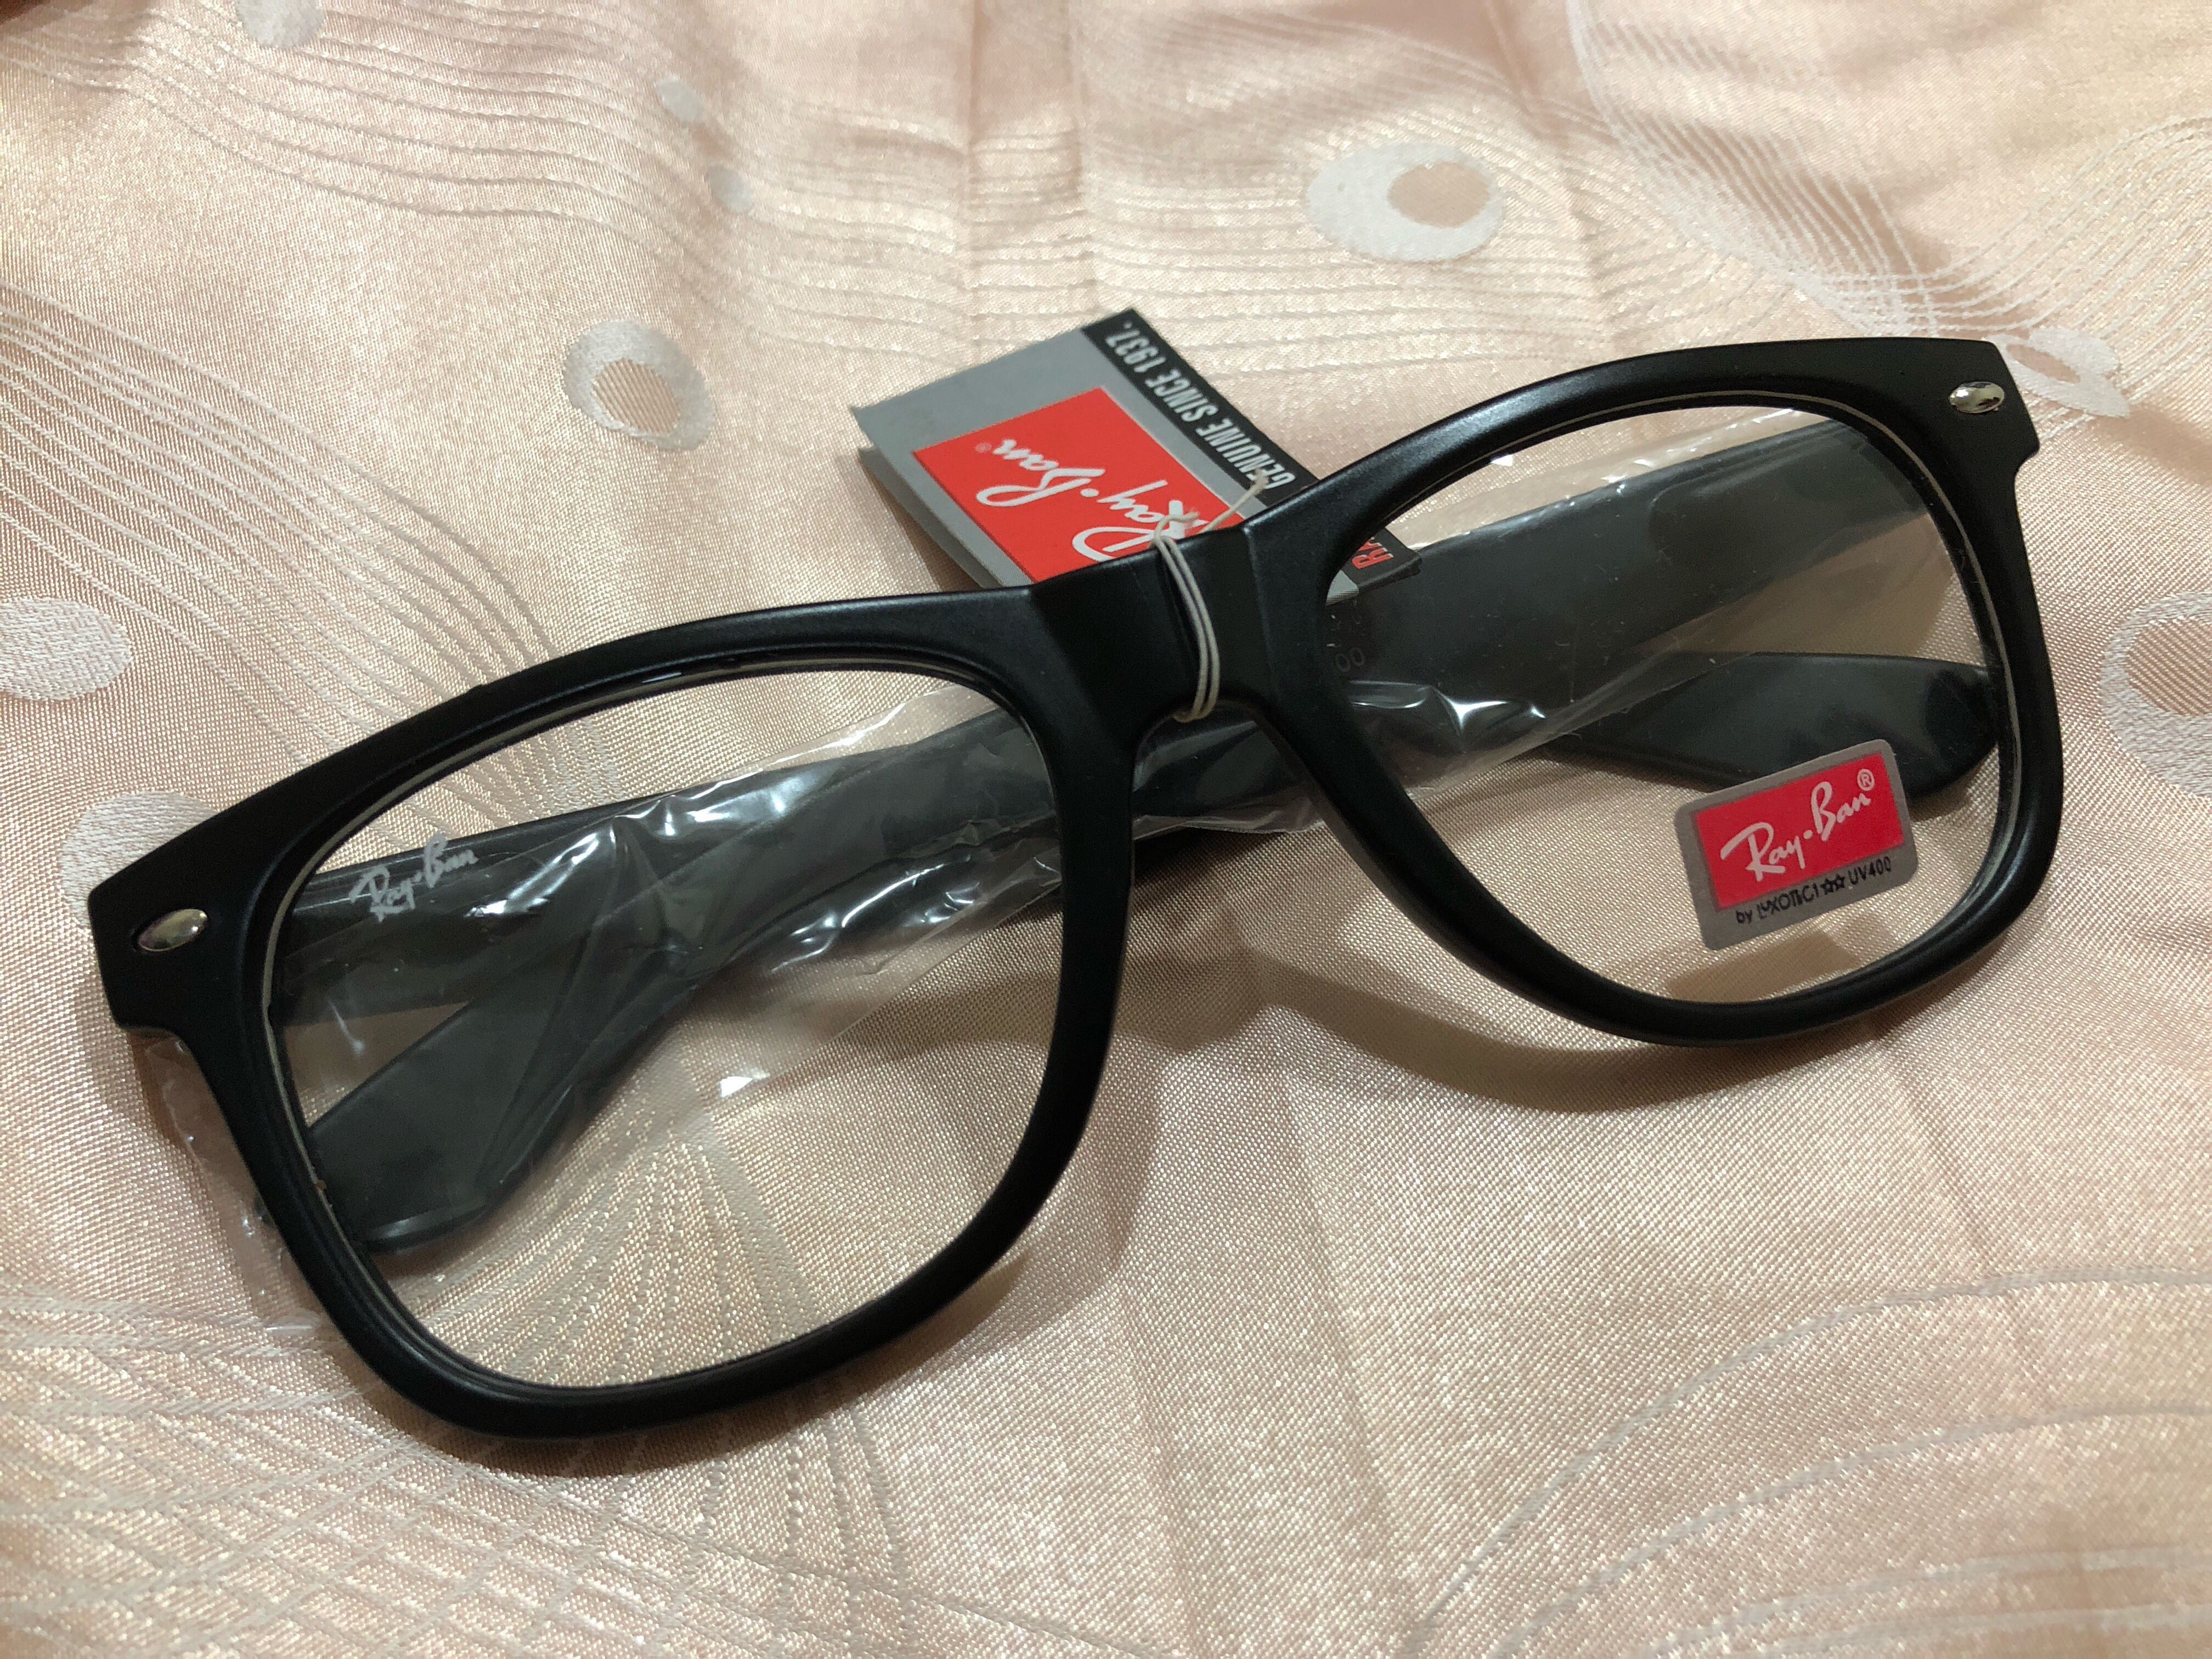 7915d91b269a7 Inspired RayBan glasses